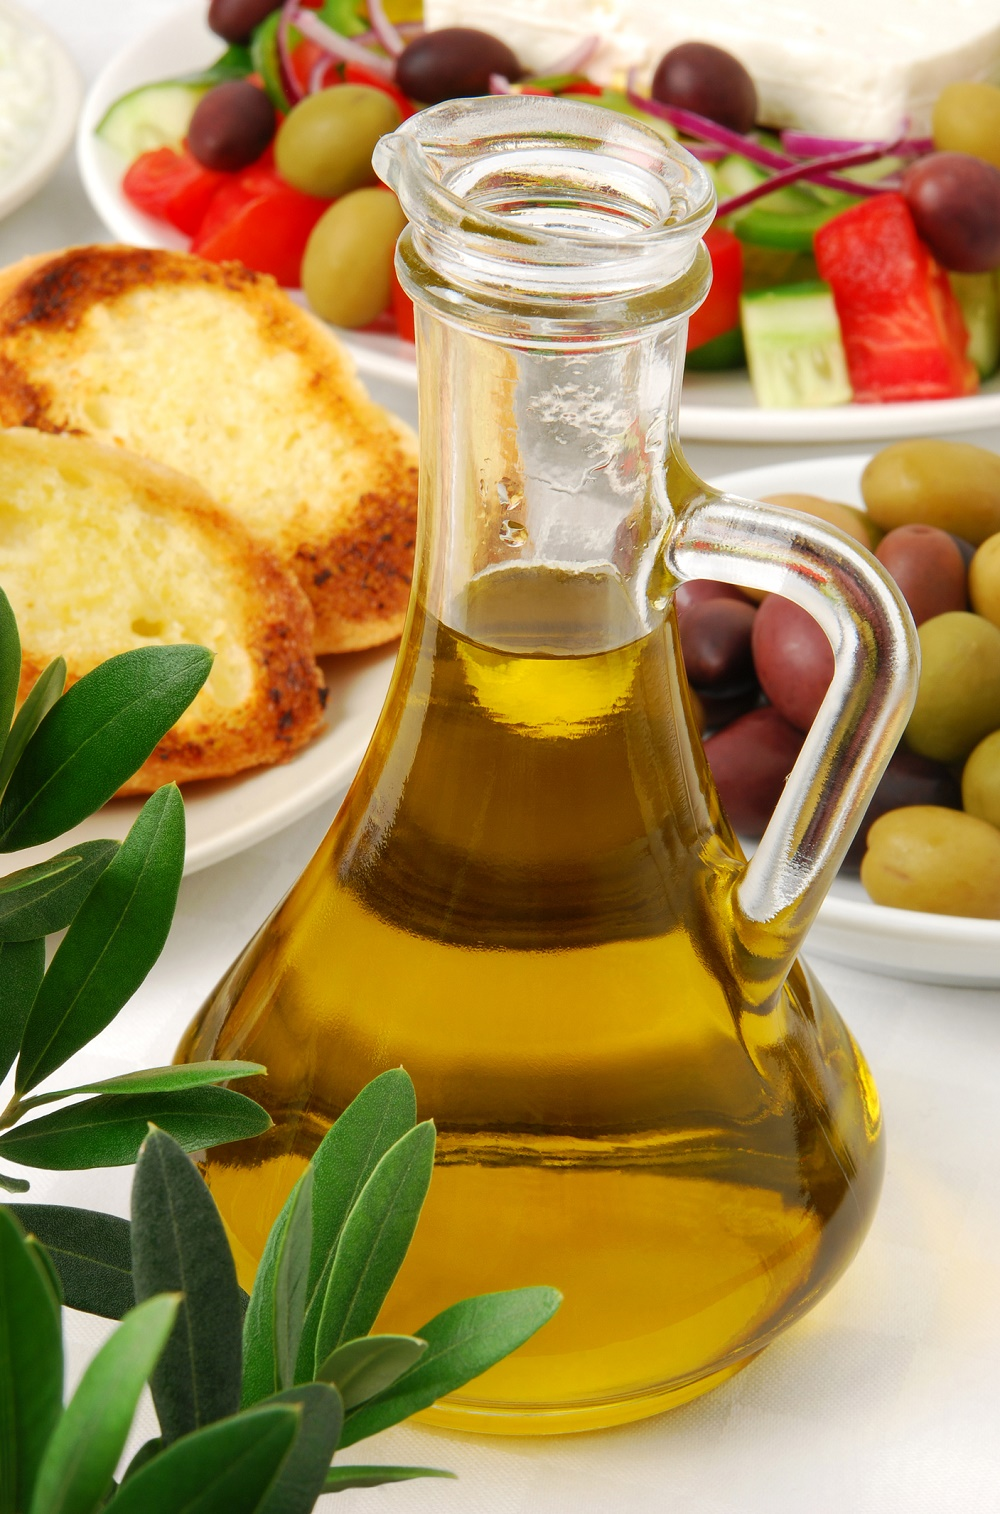 Heart Healthy Olive Oil-Infused Recipes with Food Network's Ellie Krieger